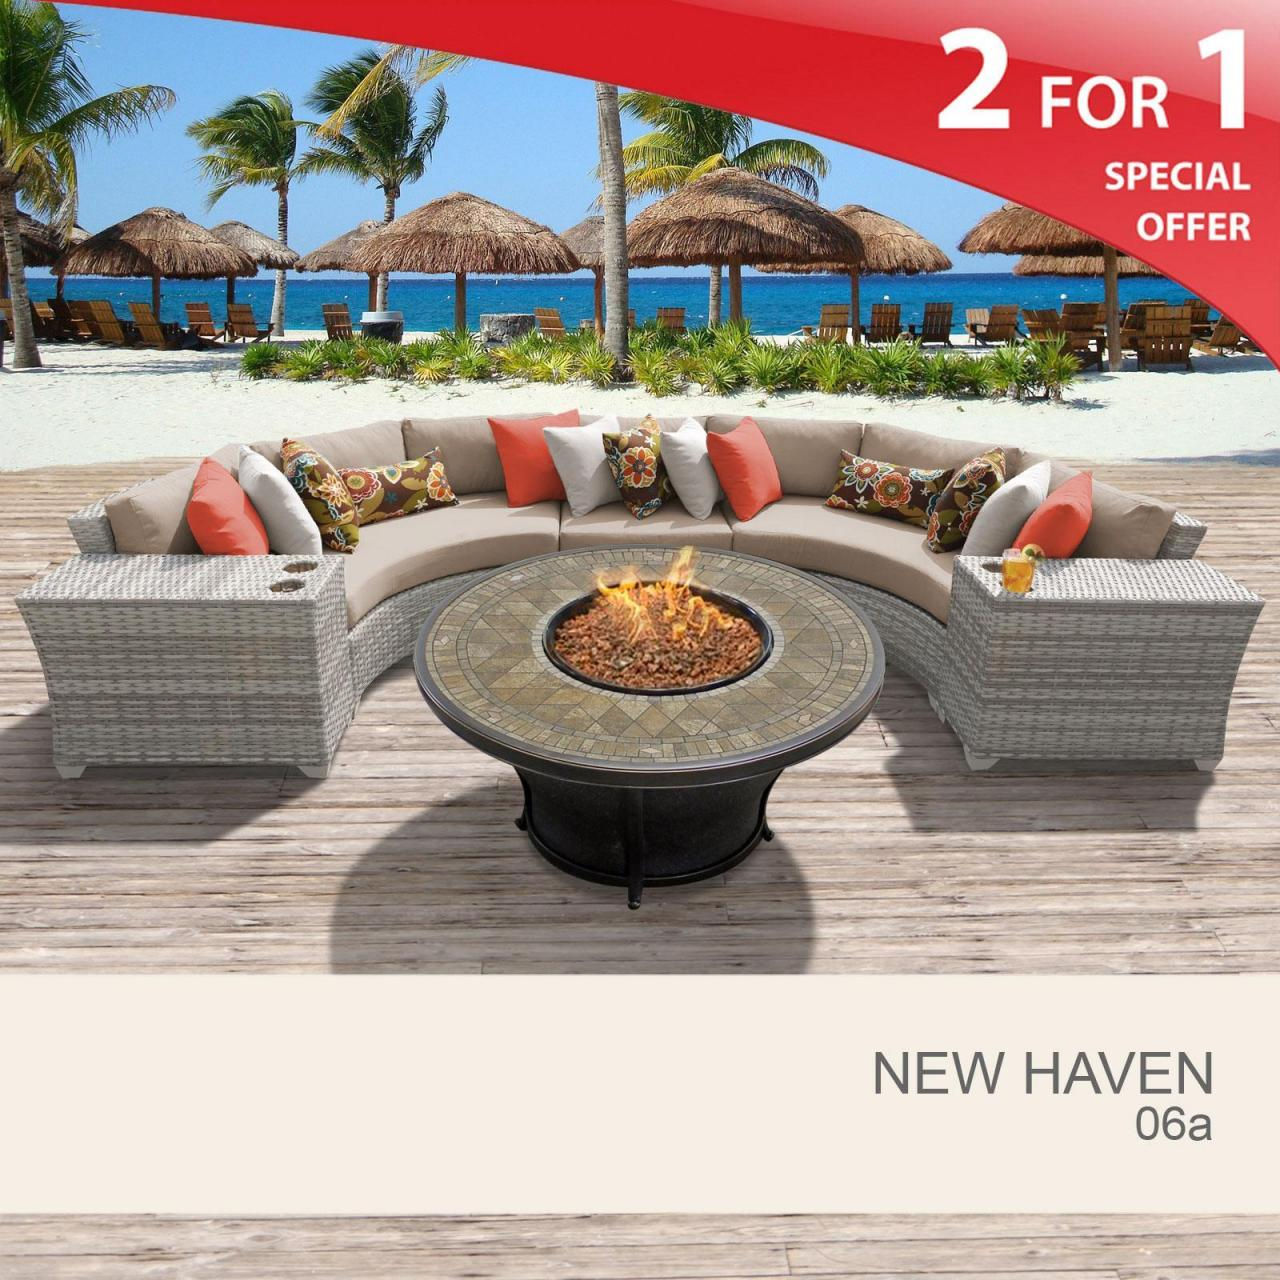 China New Haven New Haven 6 Piece Outdoor Wicker Patio Furniture Set 06a wholesale